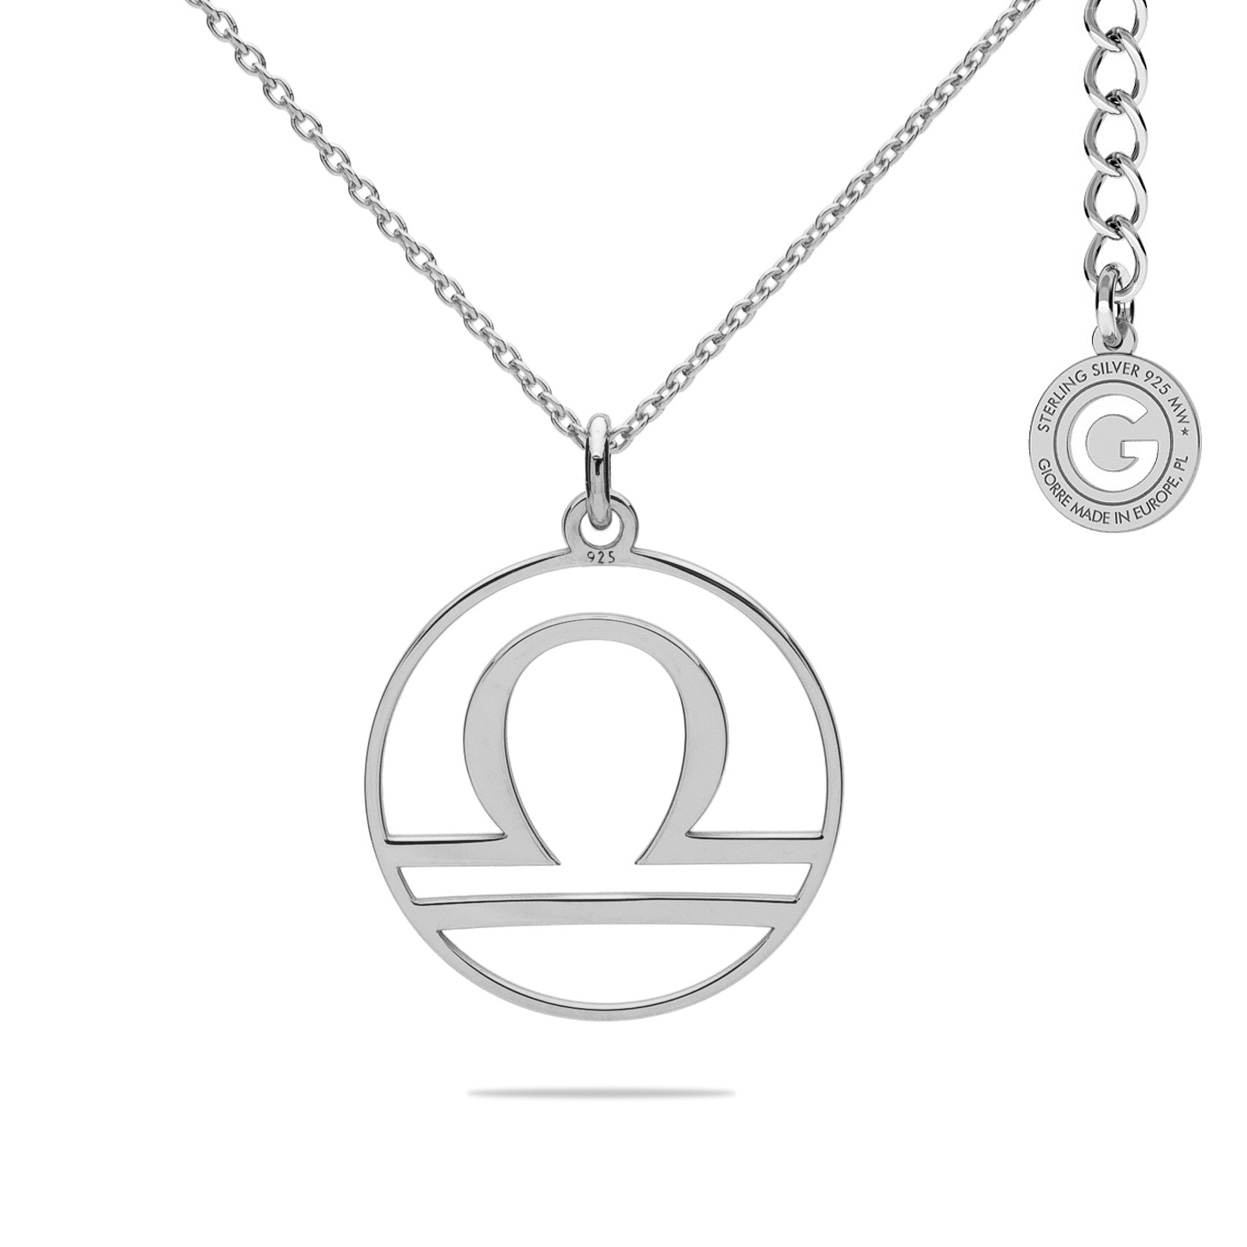 LIBRA ZODIAC SIGN NECKLACE SILVER 925